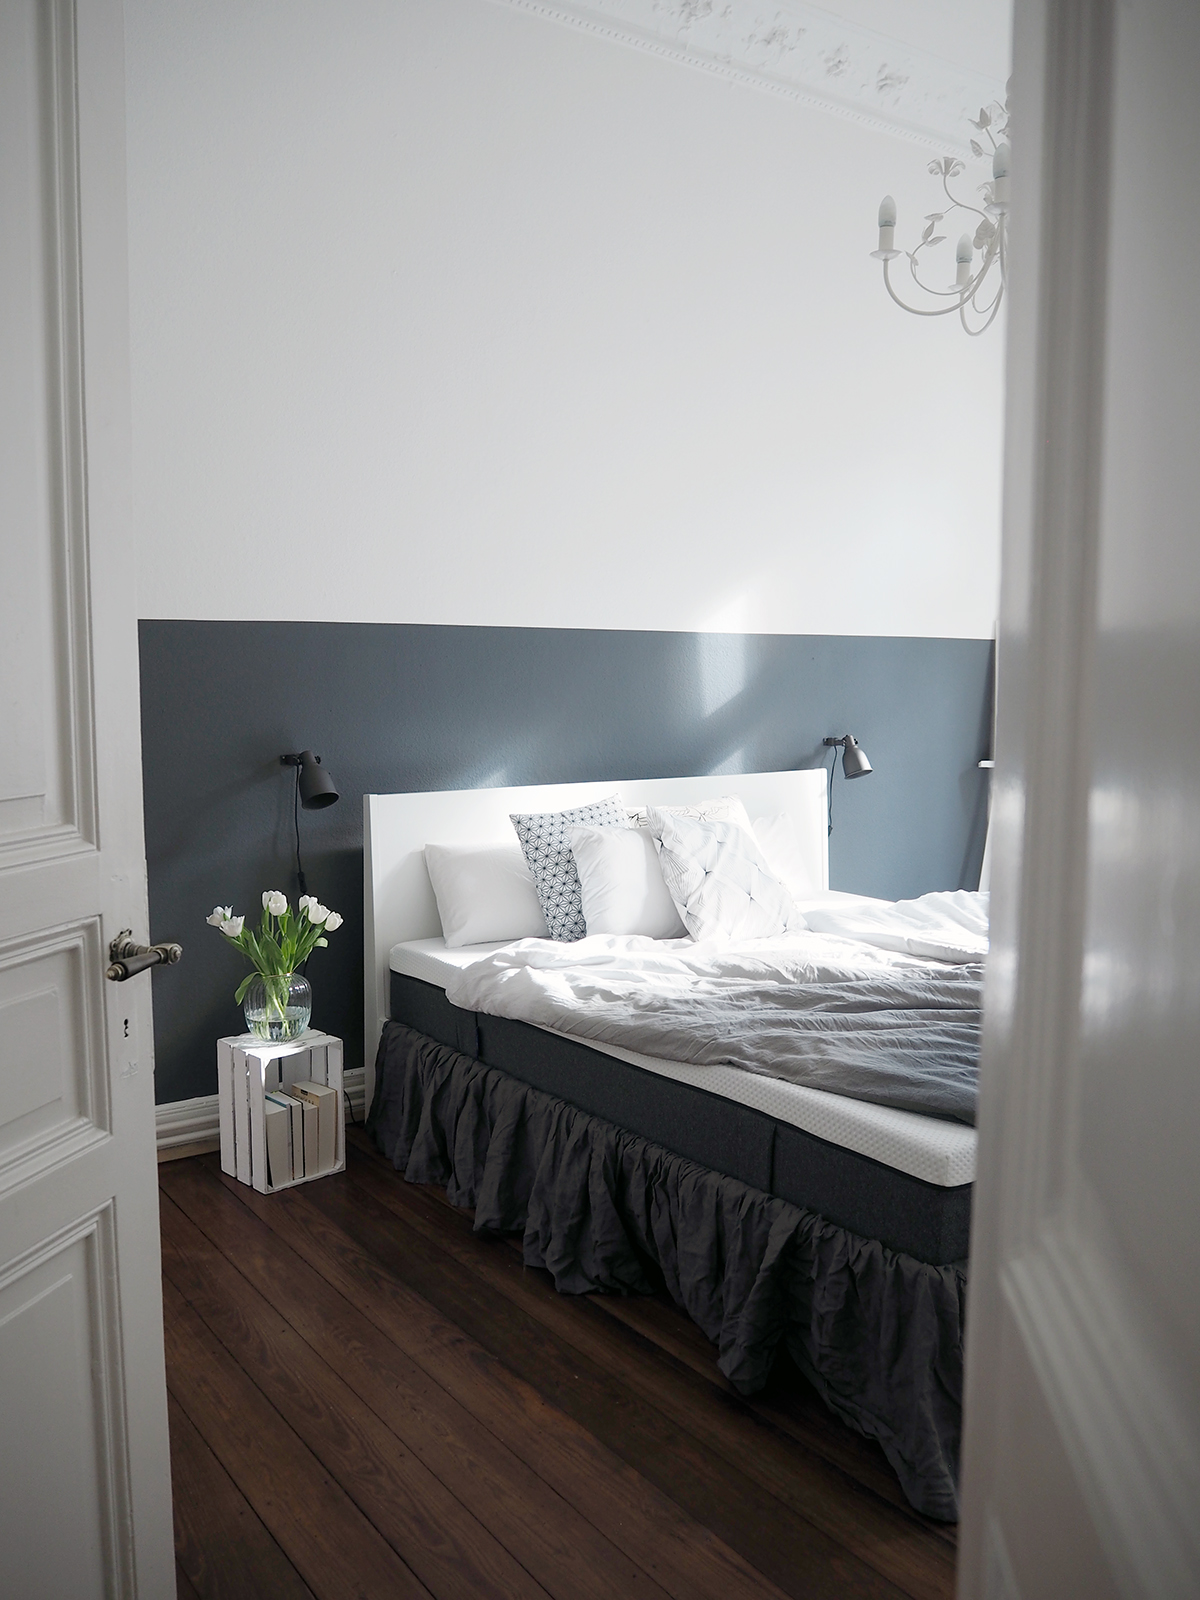 sleeping in the clouds die emma matratze im test und im interview. Black Bedroom Furniture Sets. Home Design Ideas